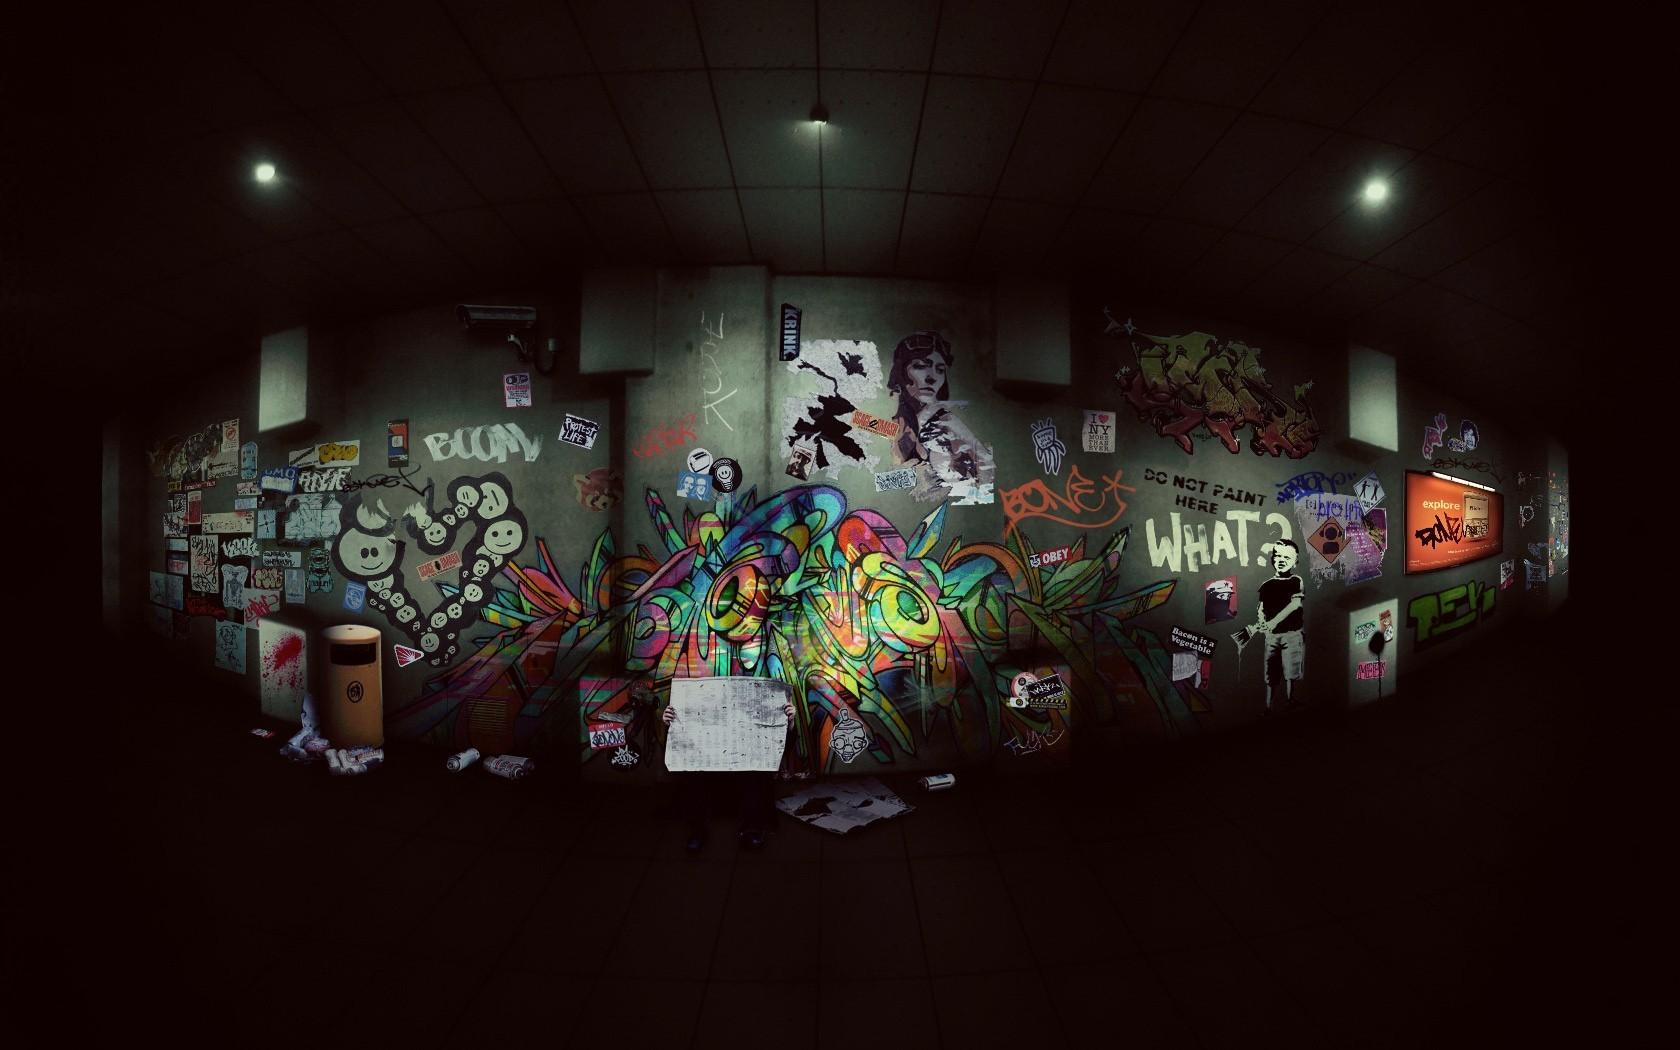 graffiti street art HD Wallpaper